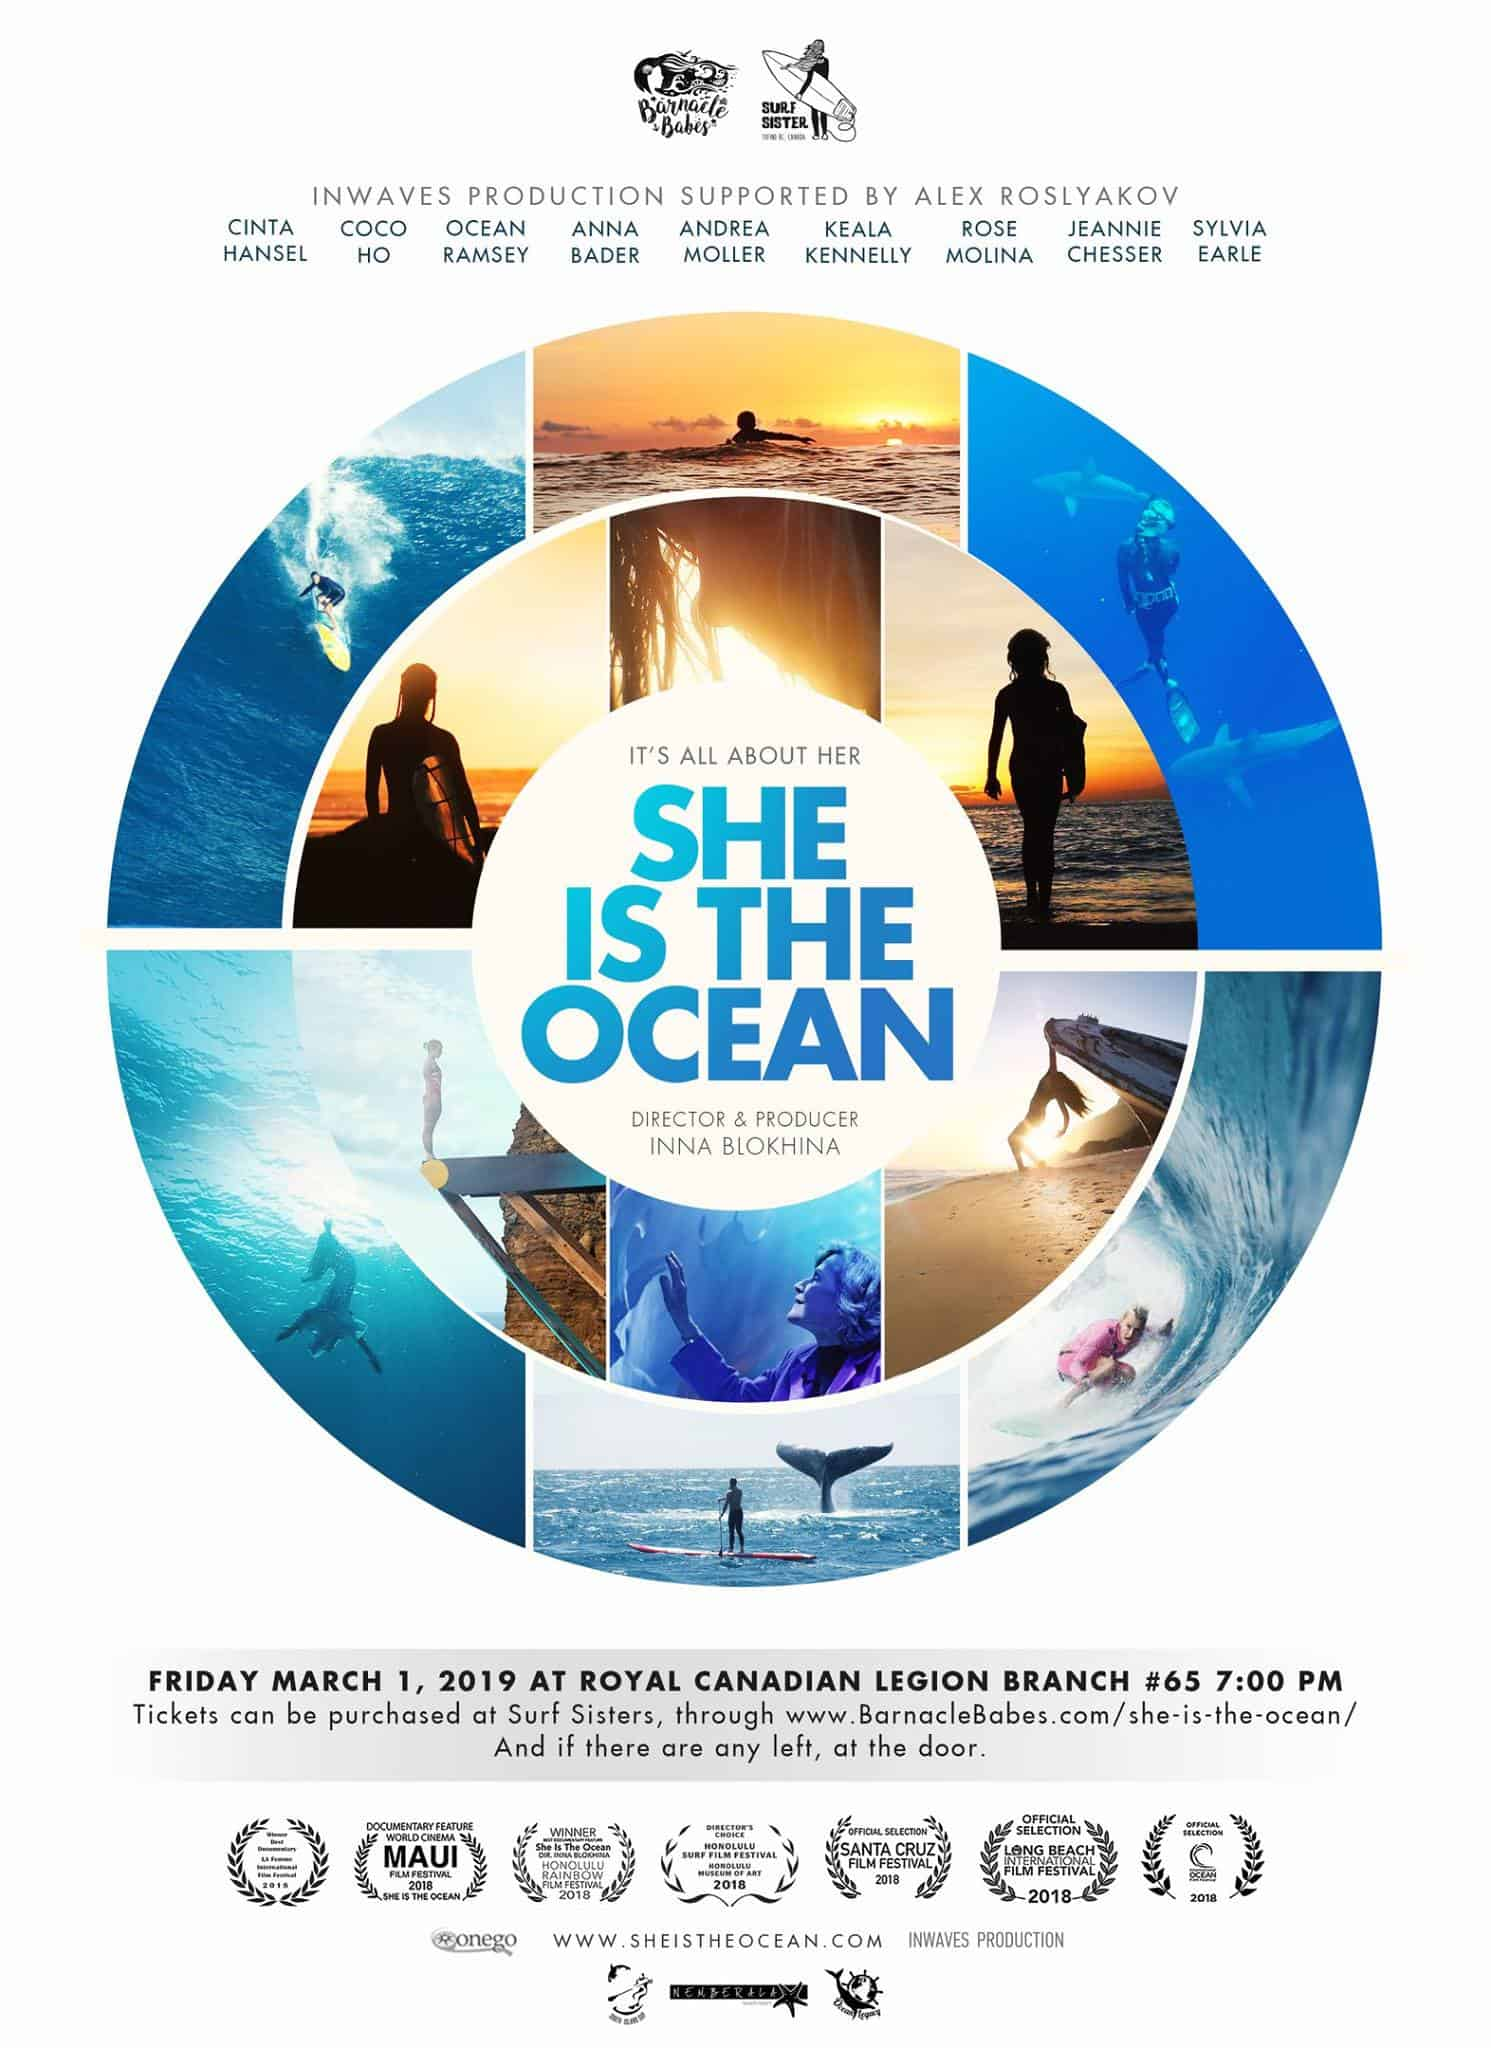 Poster for She is the Ocean Film Screening, March 1, 2019